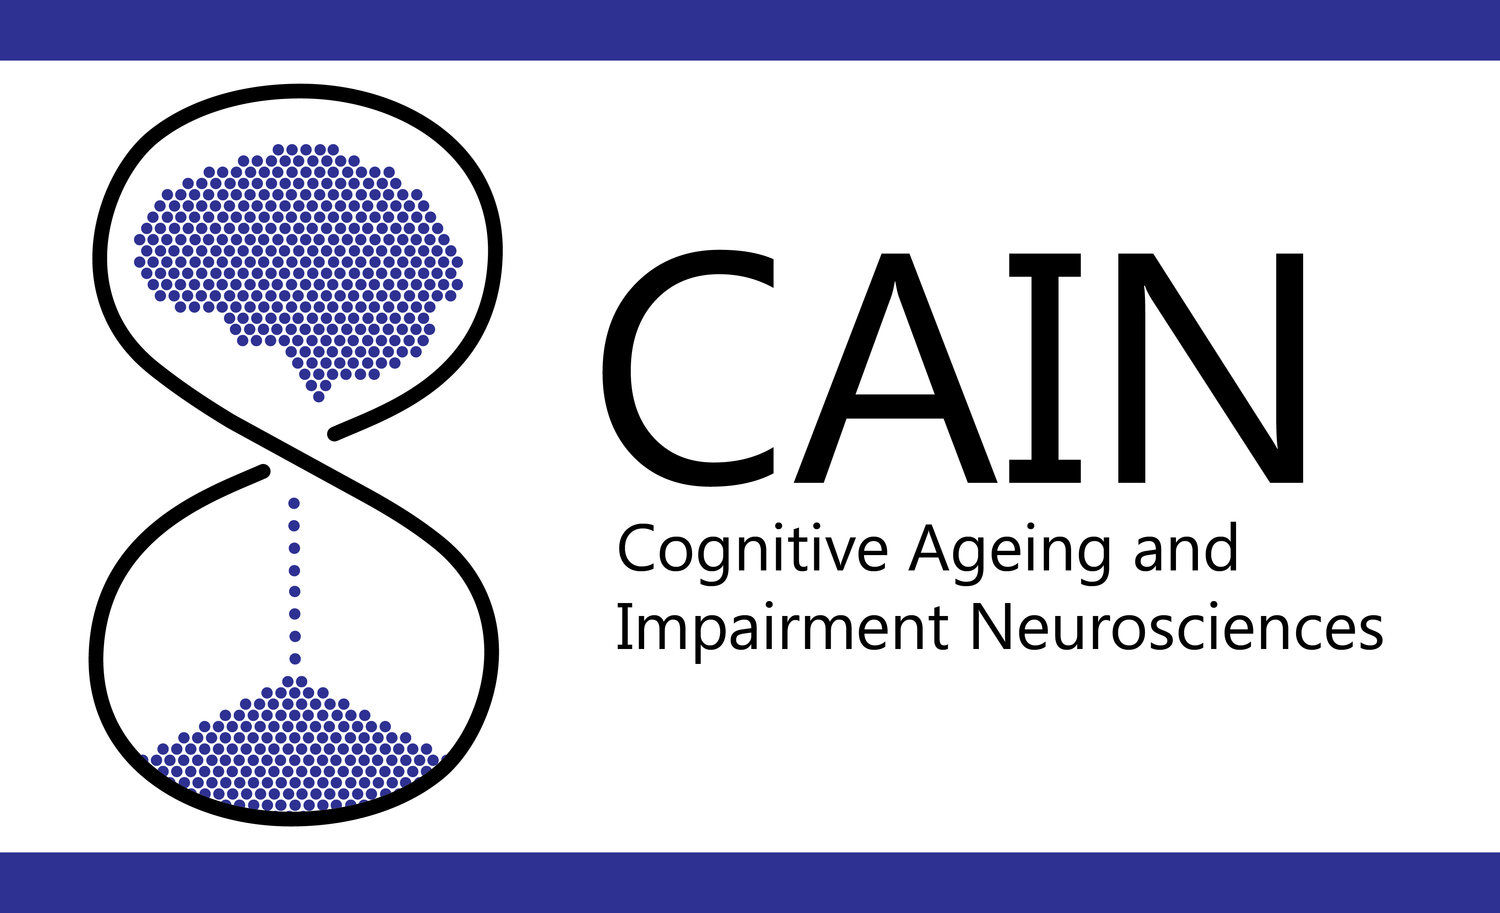 Cognitive Ageing and Impairment Neurosciences